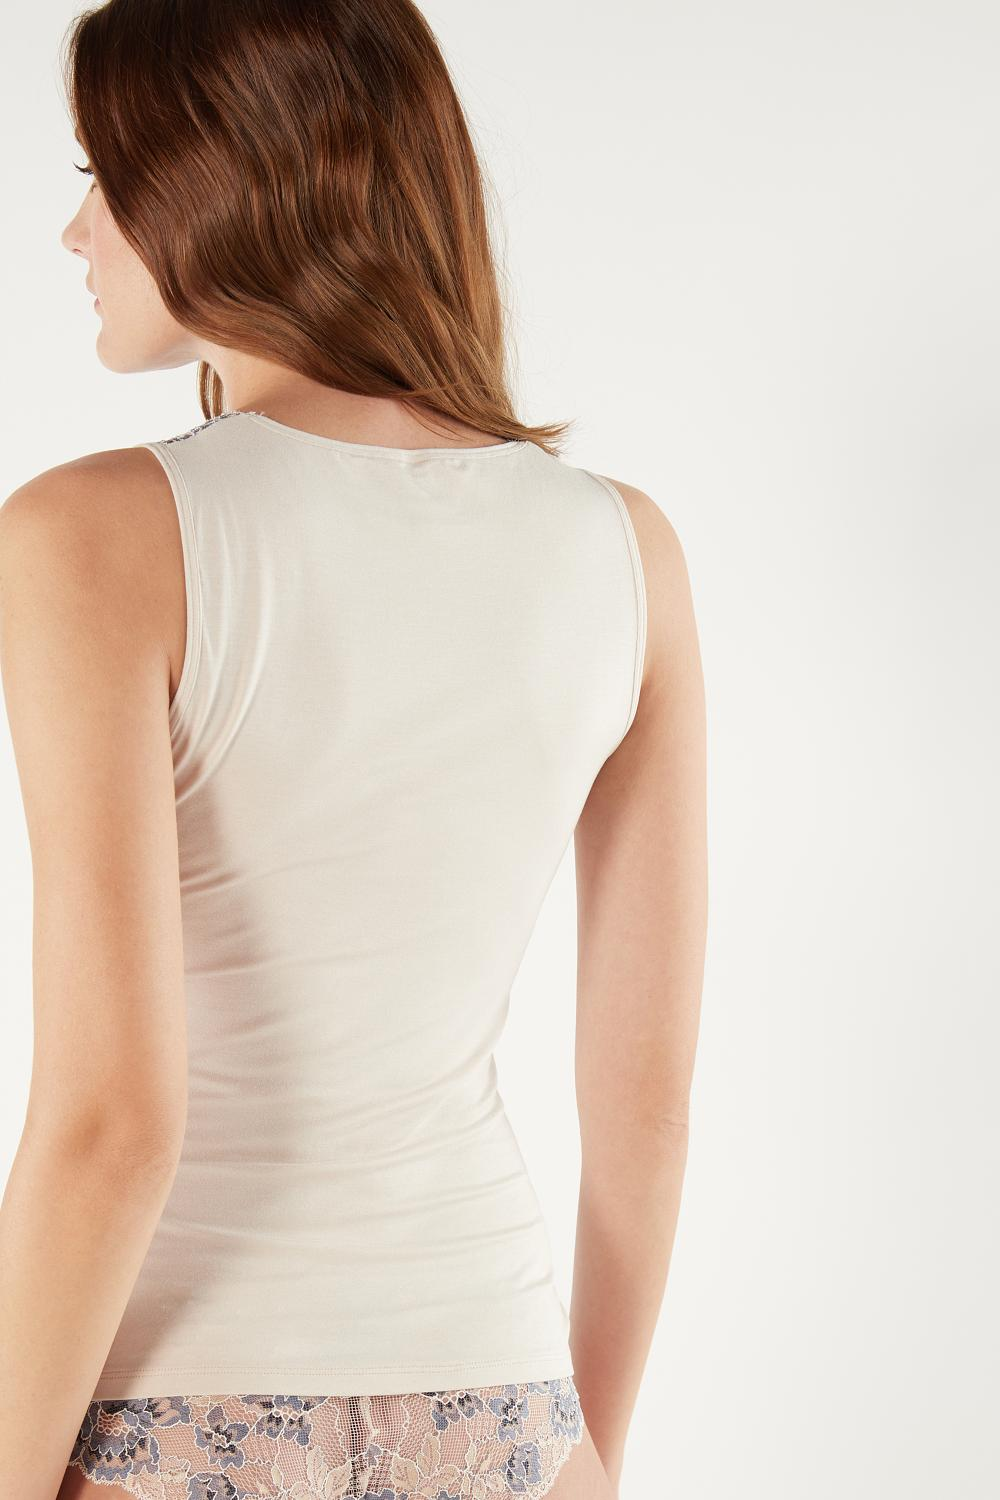 Delicate Lullaby Camisole